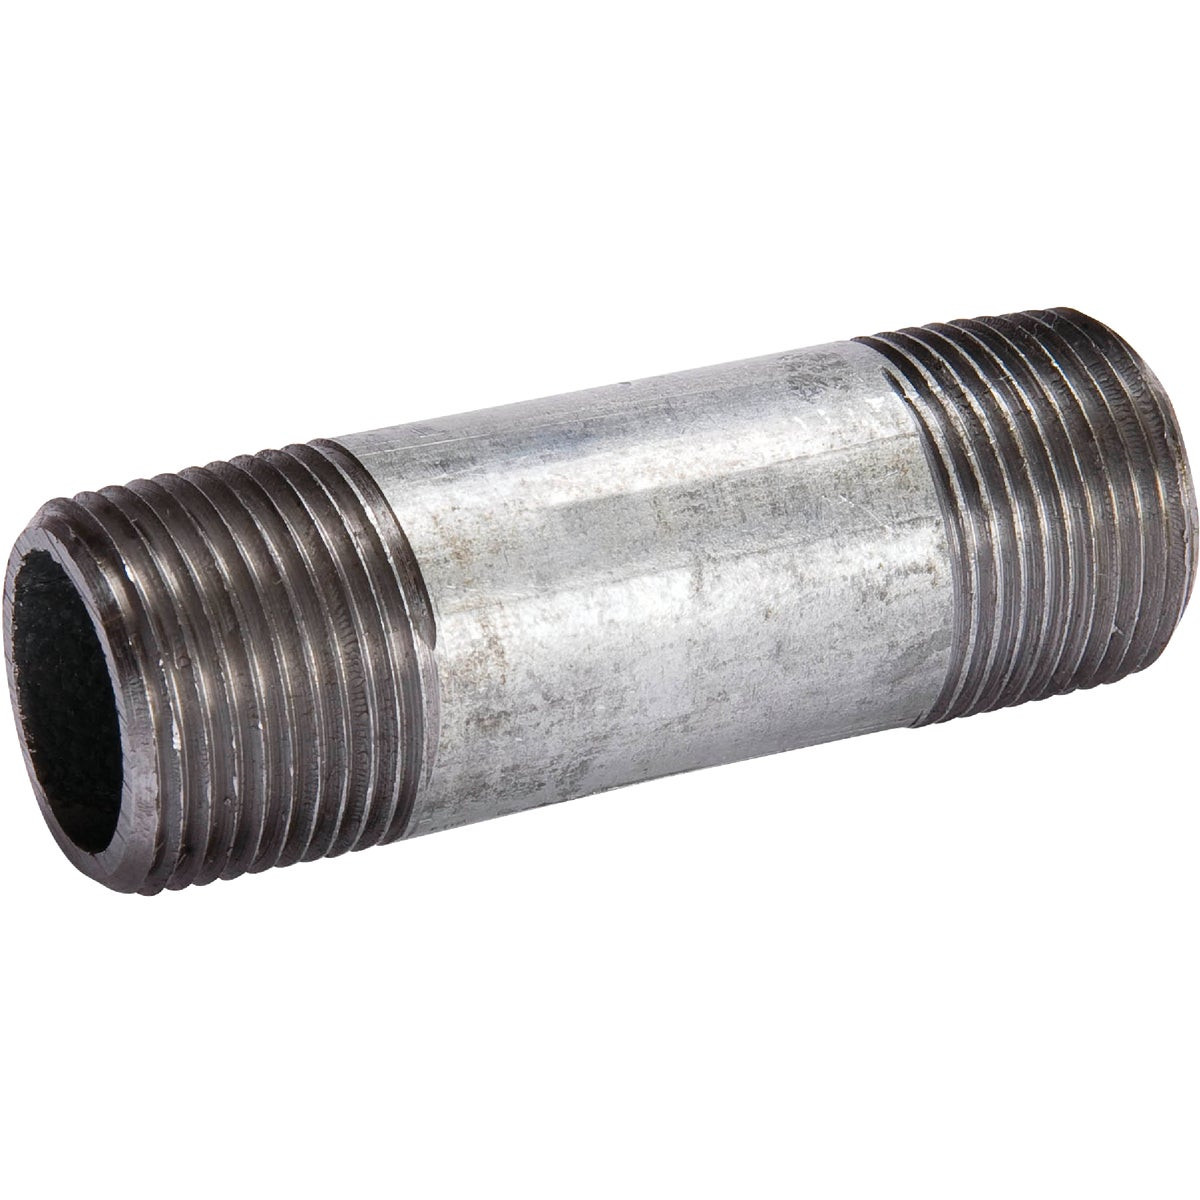 3/8X6 GALV NIPPLE - 10310 by Southland Pipe Nippl